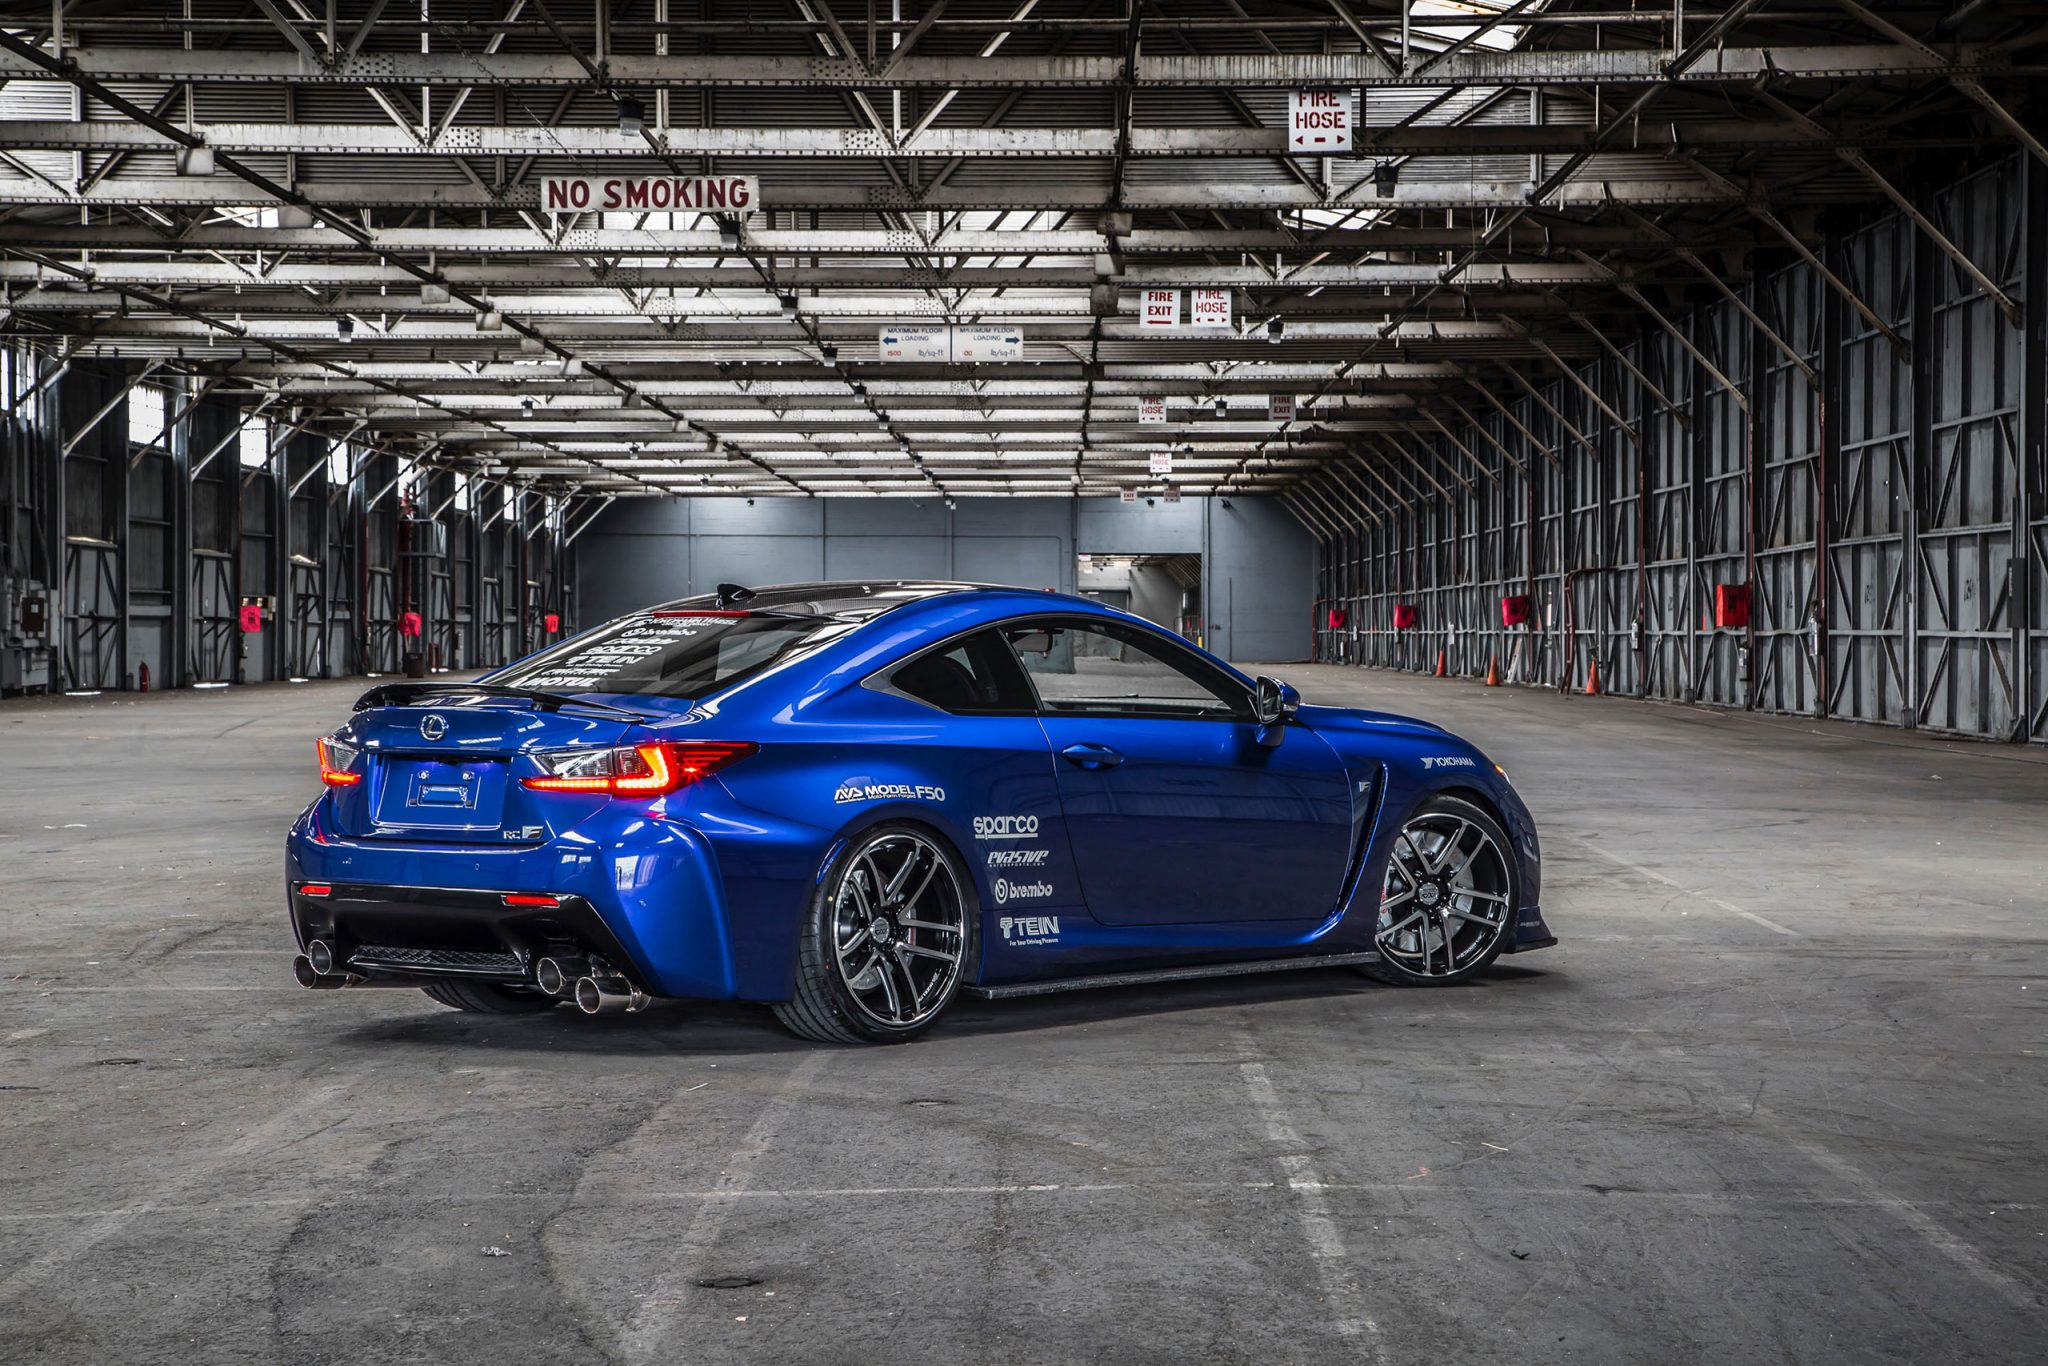 Awd Sports Cars >> Lexus Cars - News: Lexus RC F gets hotted up for SEMA